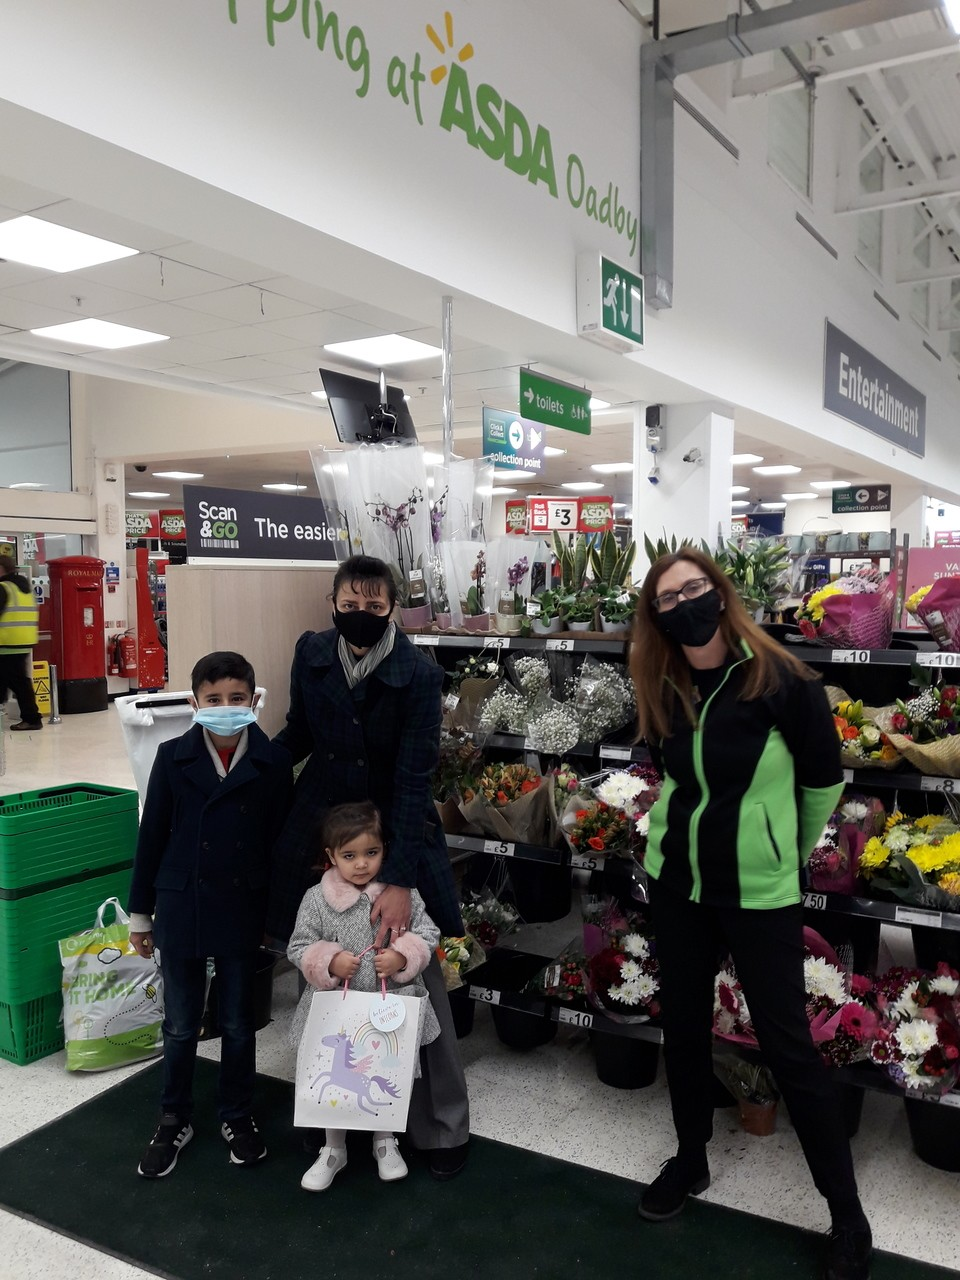 Crafty gifts from Asda Oadby to thank 2-year-old fundraiser Jemima | Asda Oadby